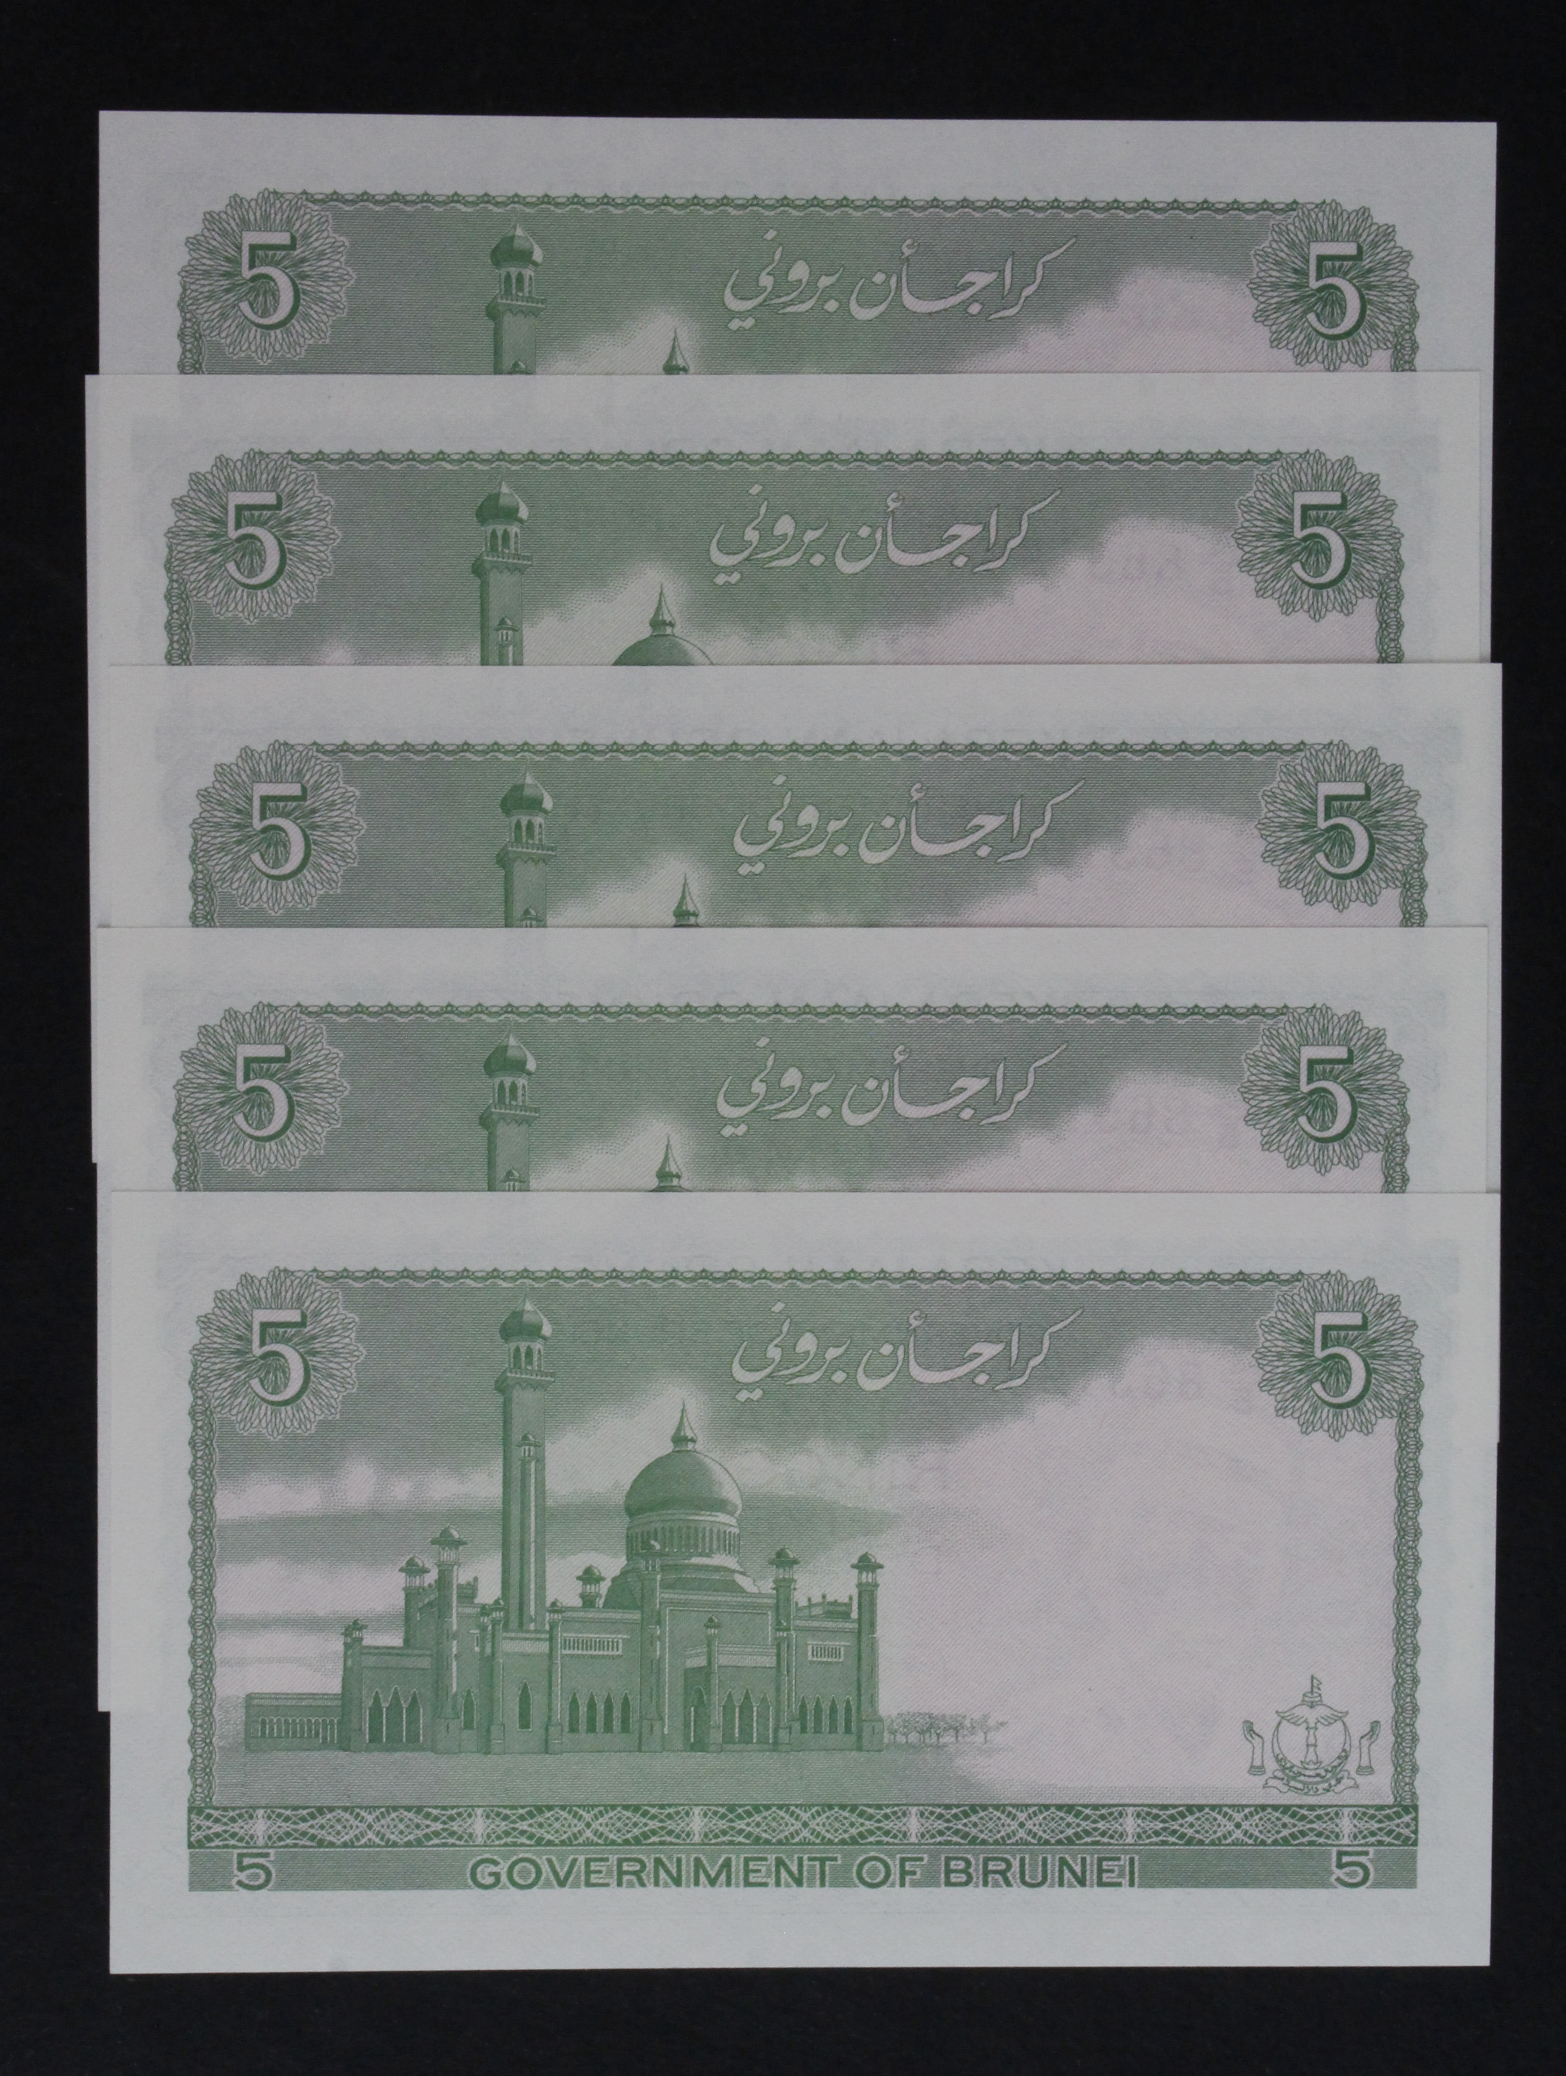 Brunei 5 Ringgit (5) dated 1986, a consecutively numbered run of 5 notes, serial A/5 865189 - A/5 - Image 2 of 2